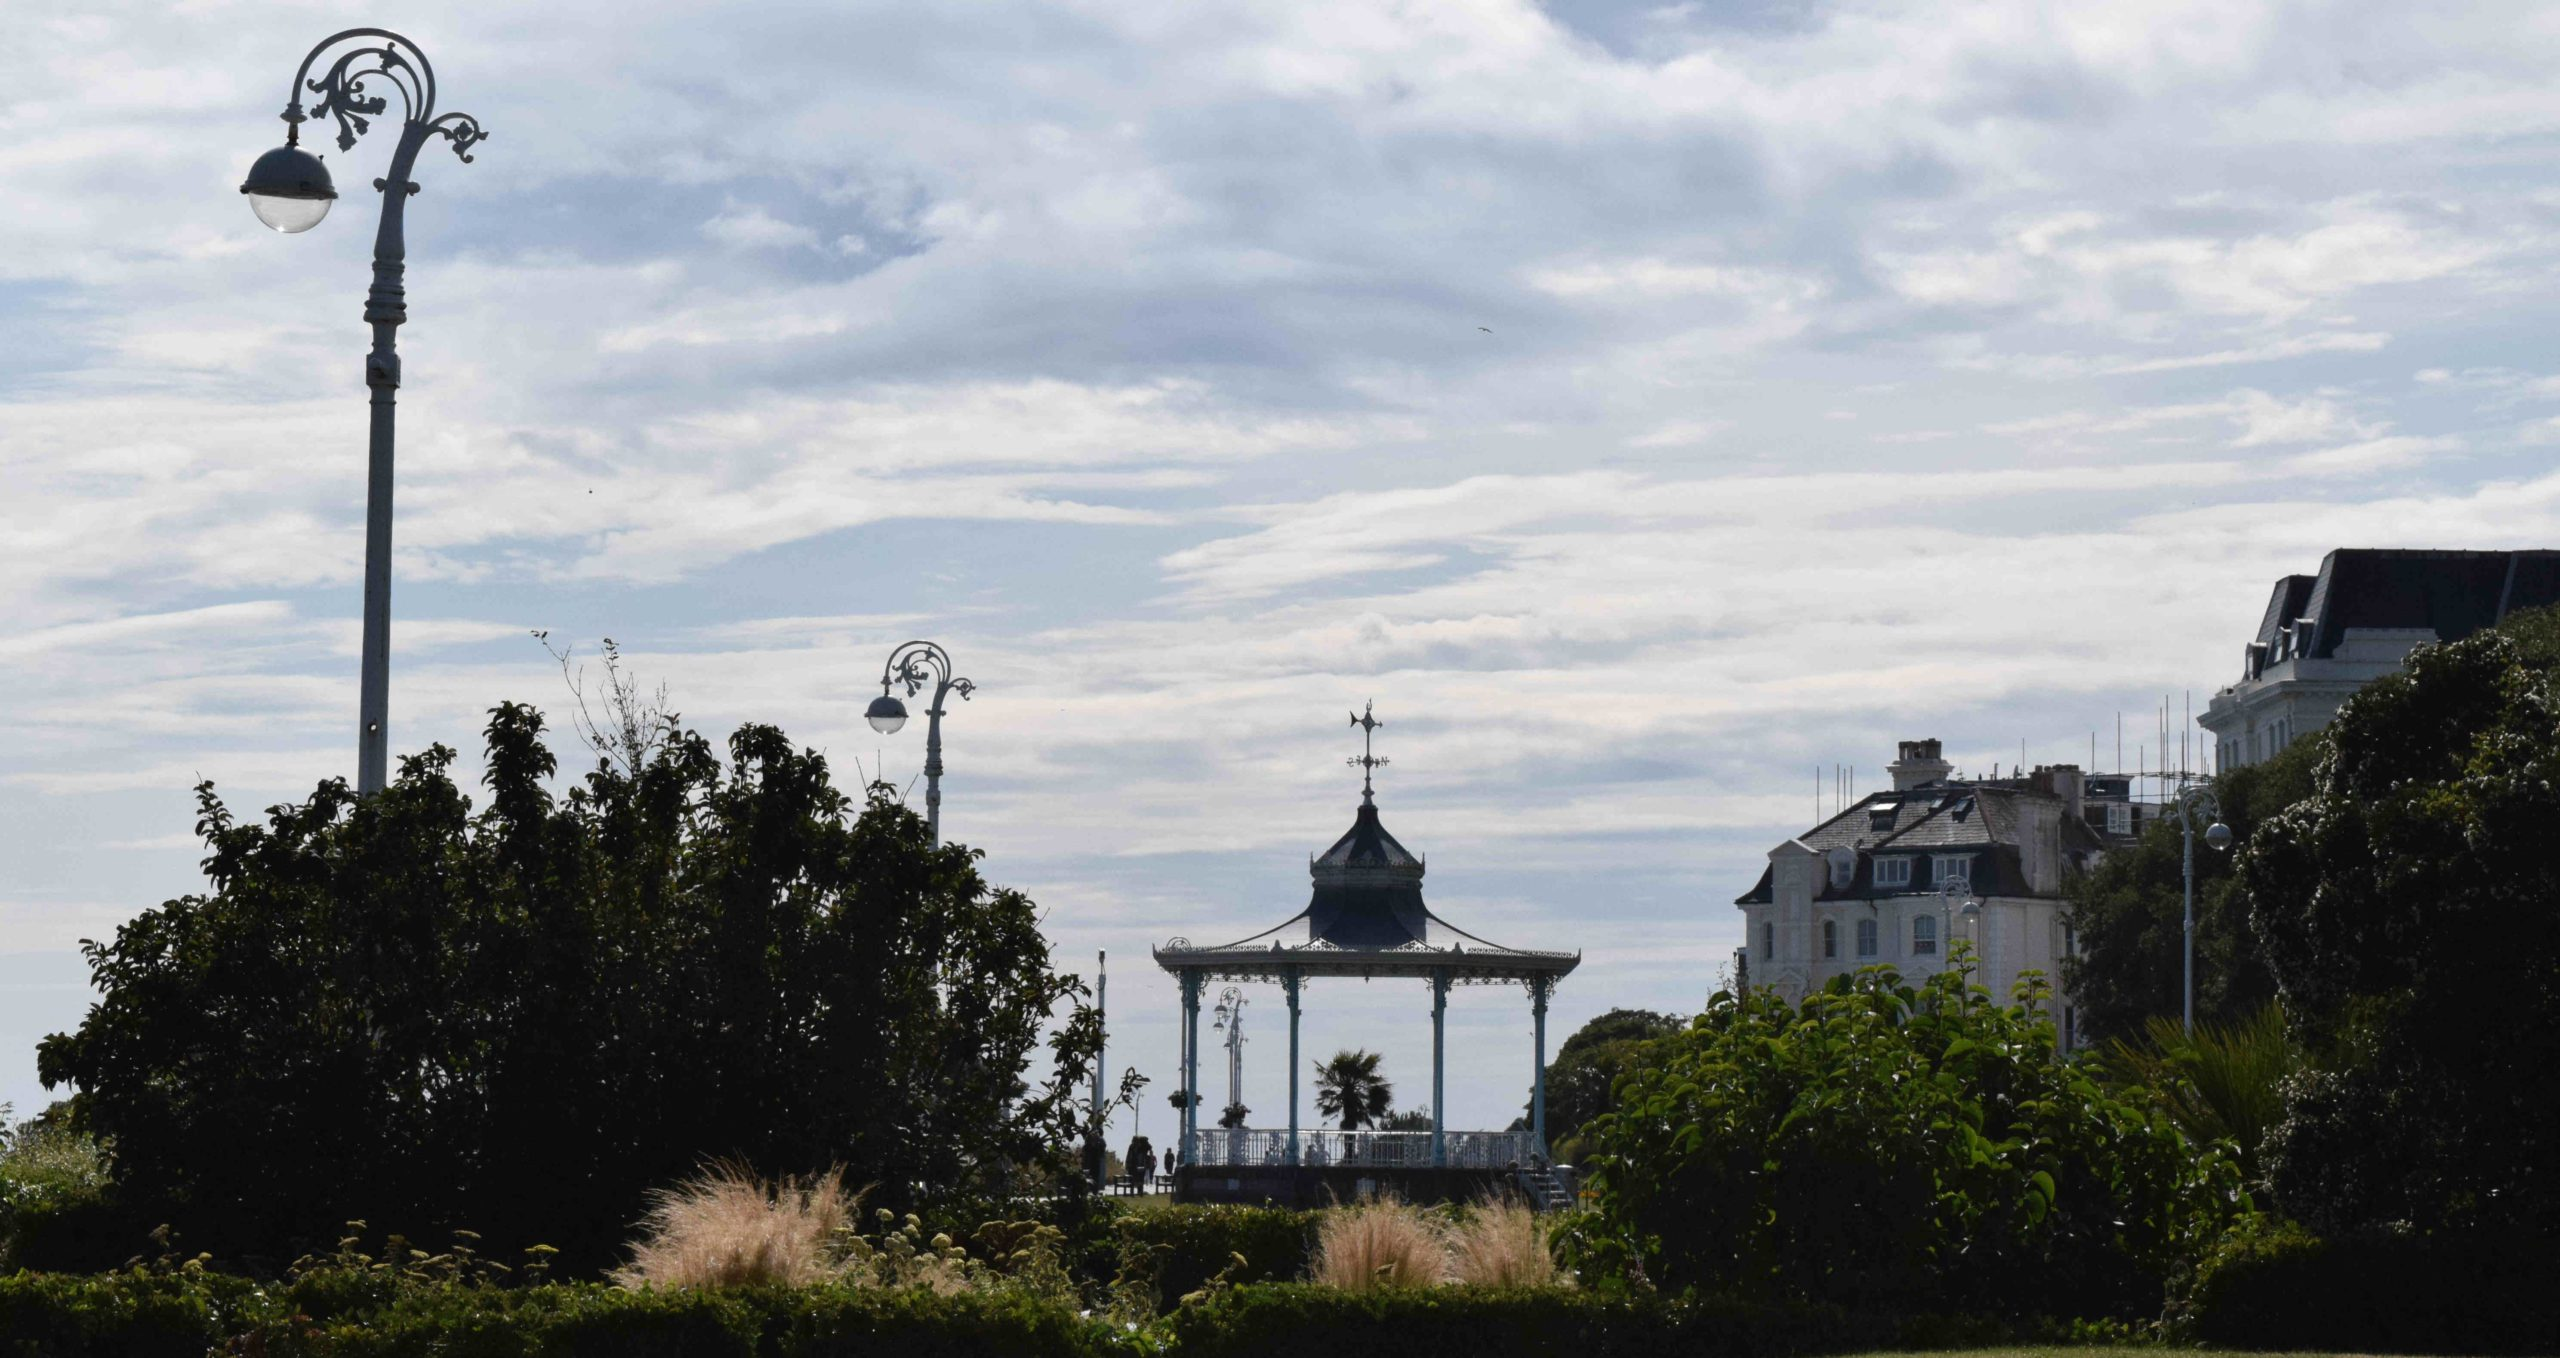 The Bandstand on The Leas